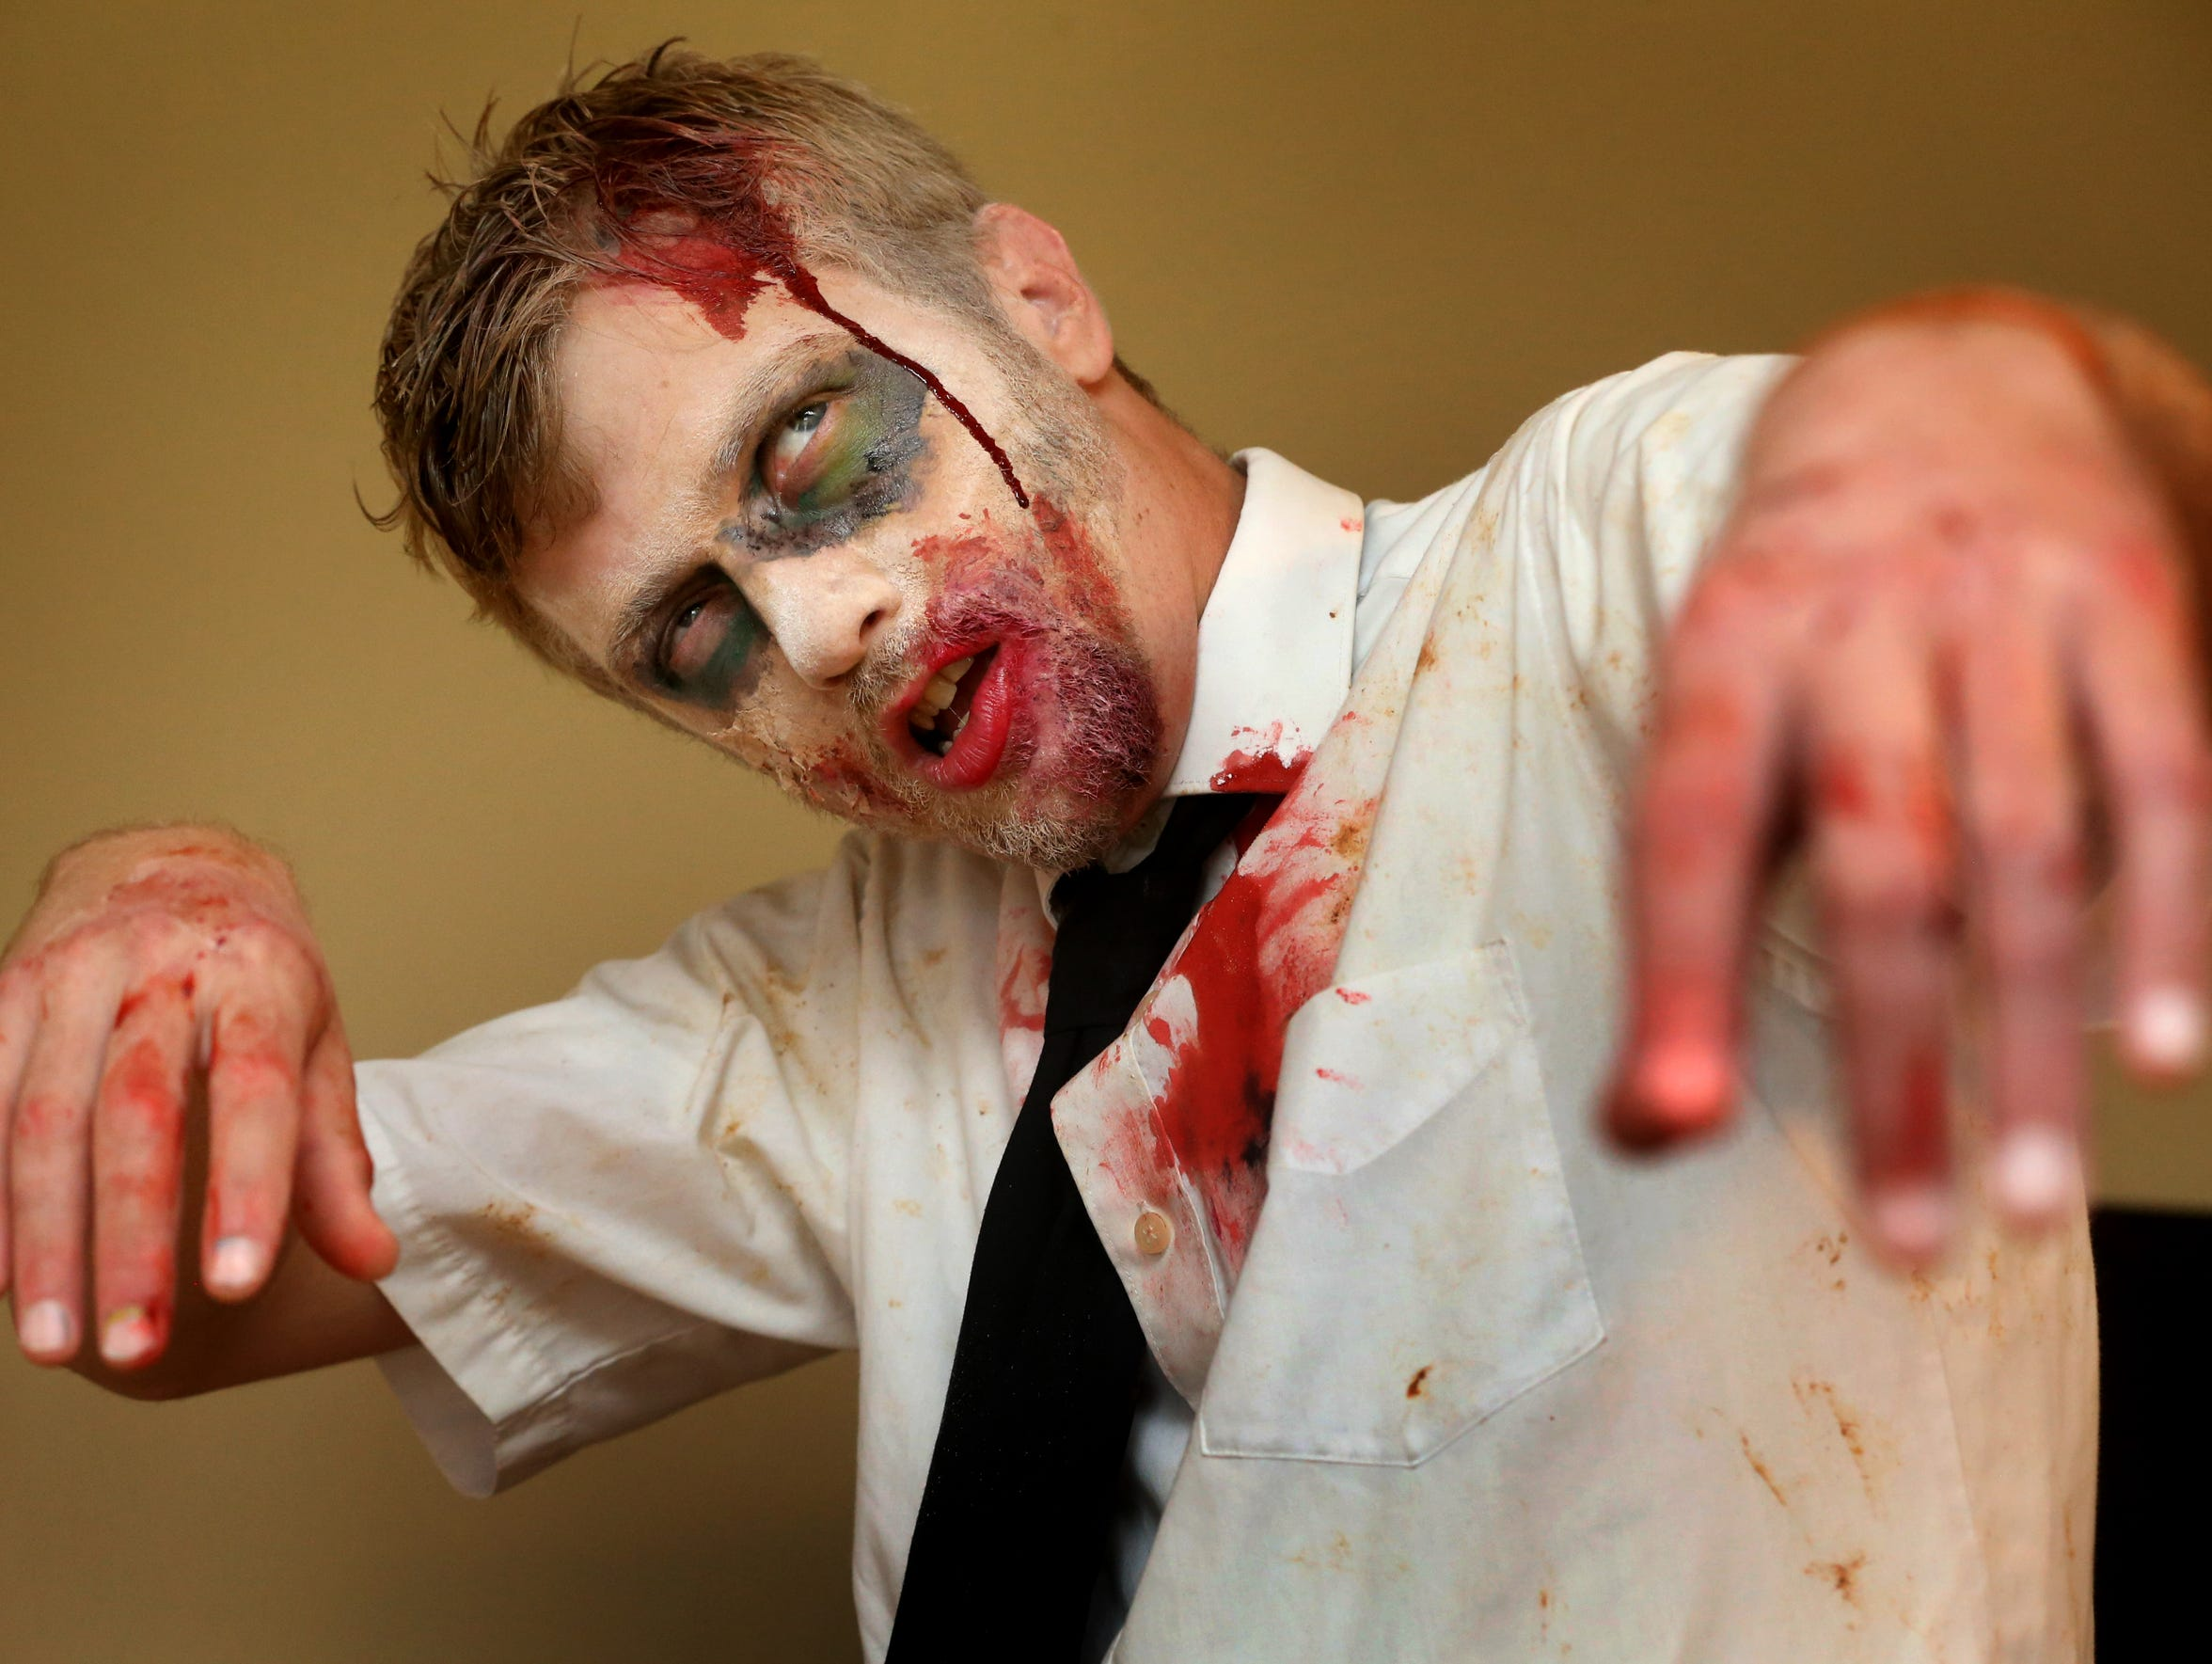 Ryan Frizzell sports his zombie look.